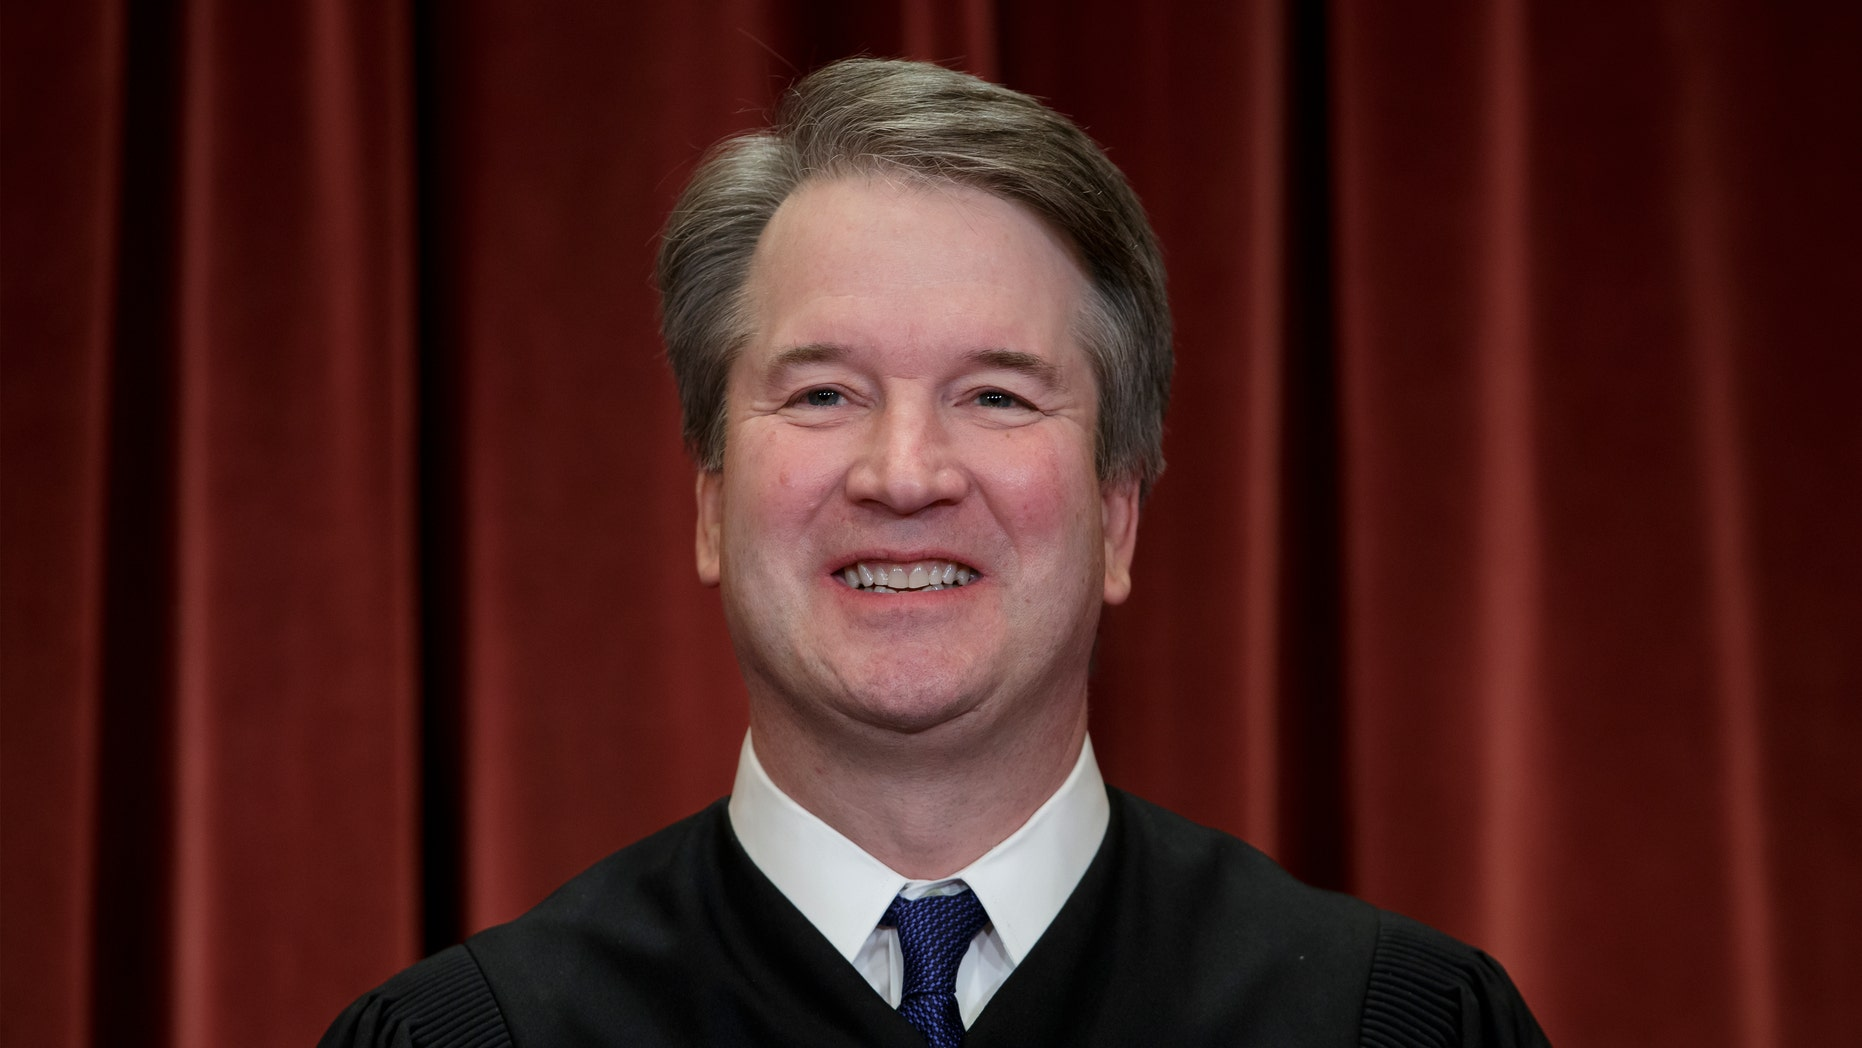 Brett Kavanaugh was confirmed as a Supreme Court Justice in October. (AP Photo/J. Scott Applewhite, File)